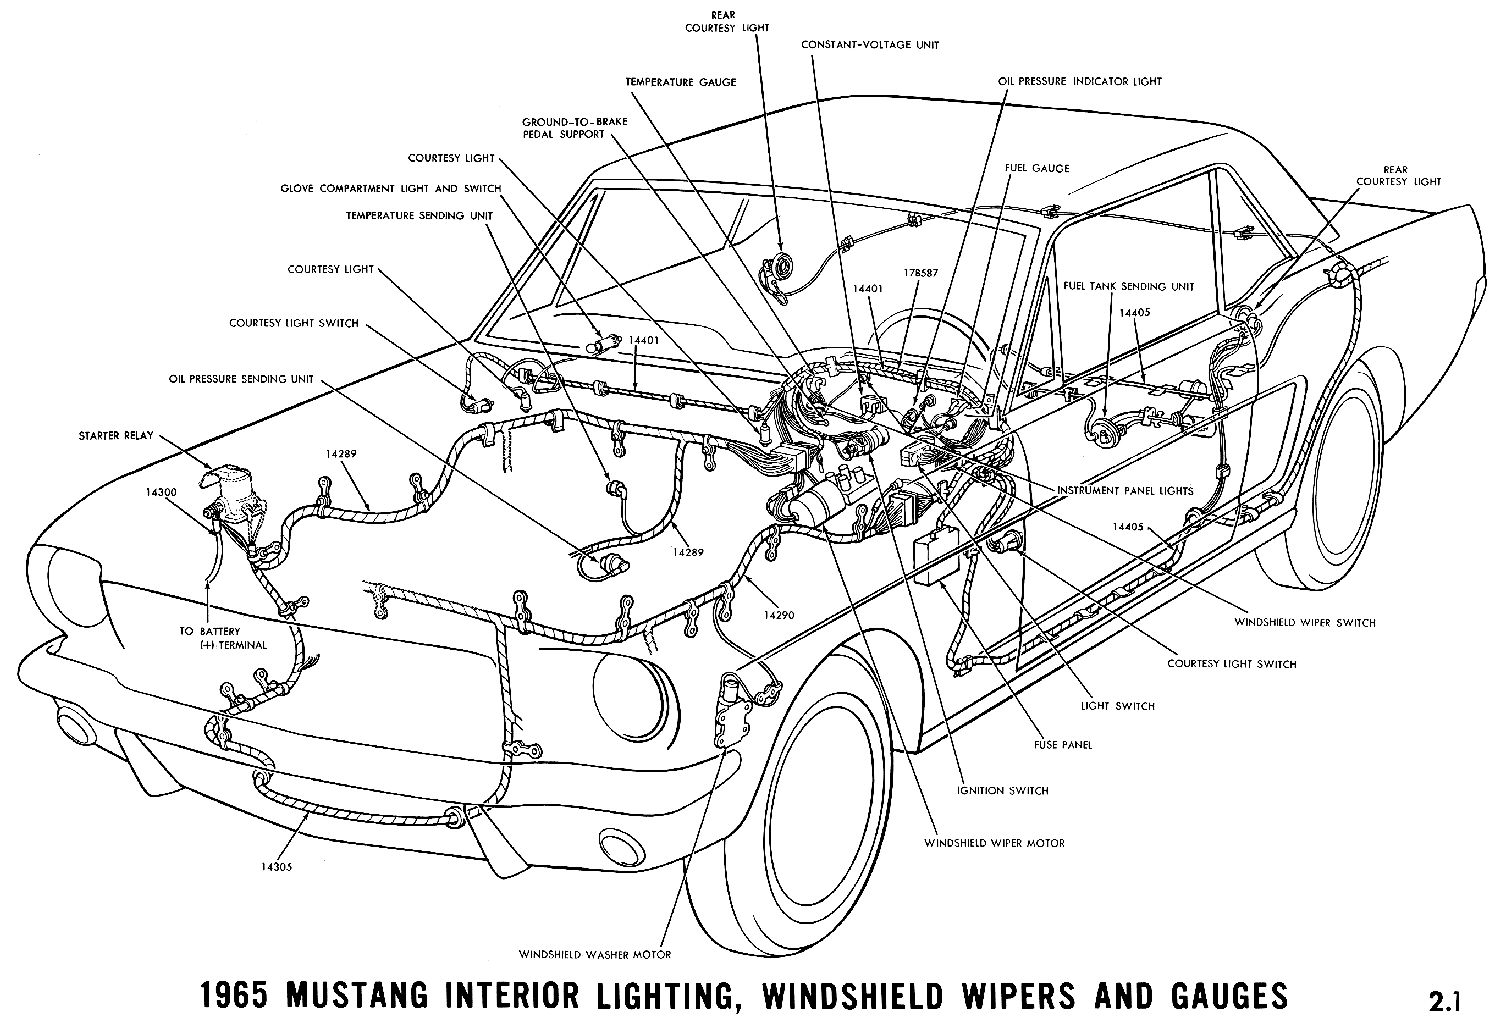 1965 Mustang Wiring Diagrams Average Joe Restoration Flasher Relay Diagram For Car 1965f